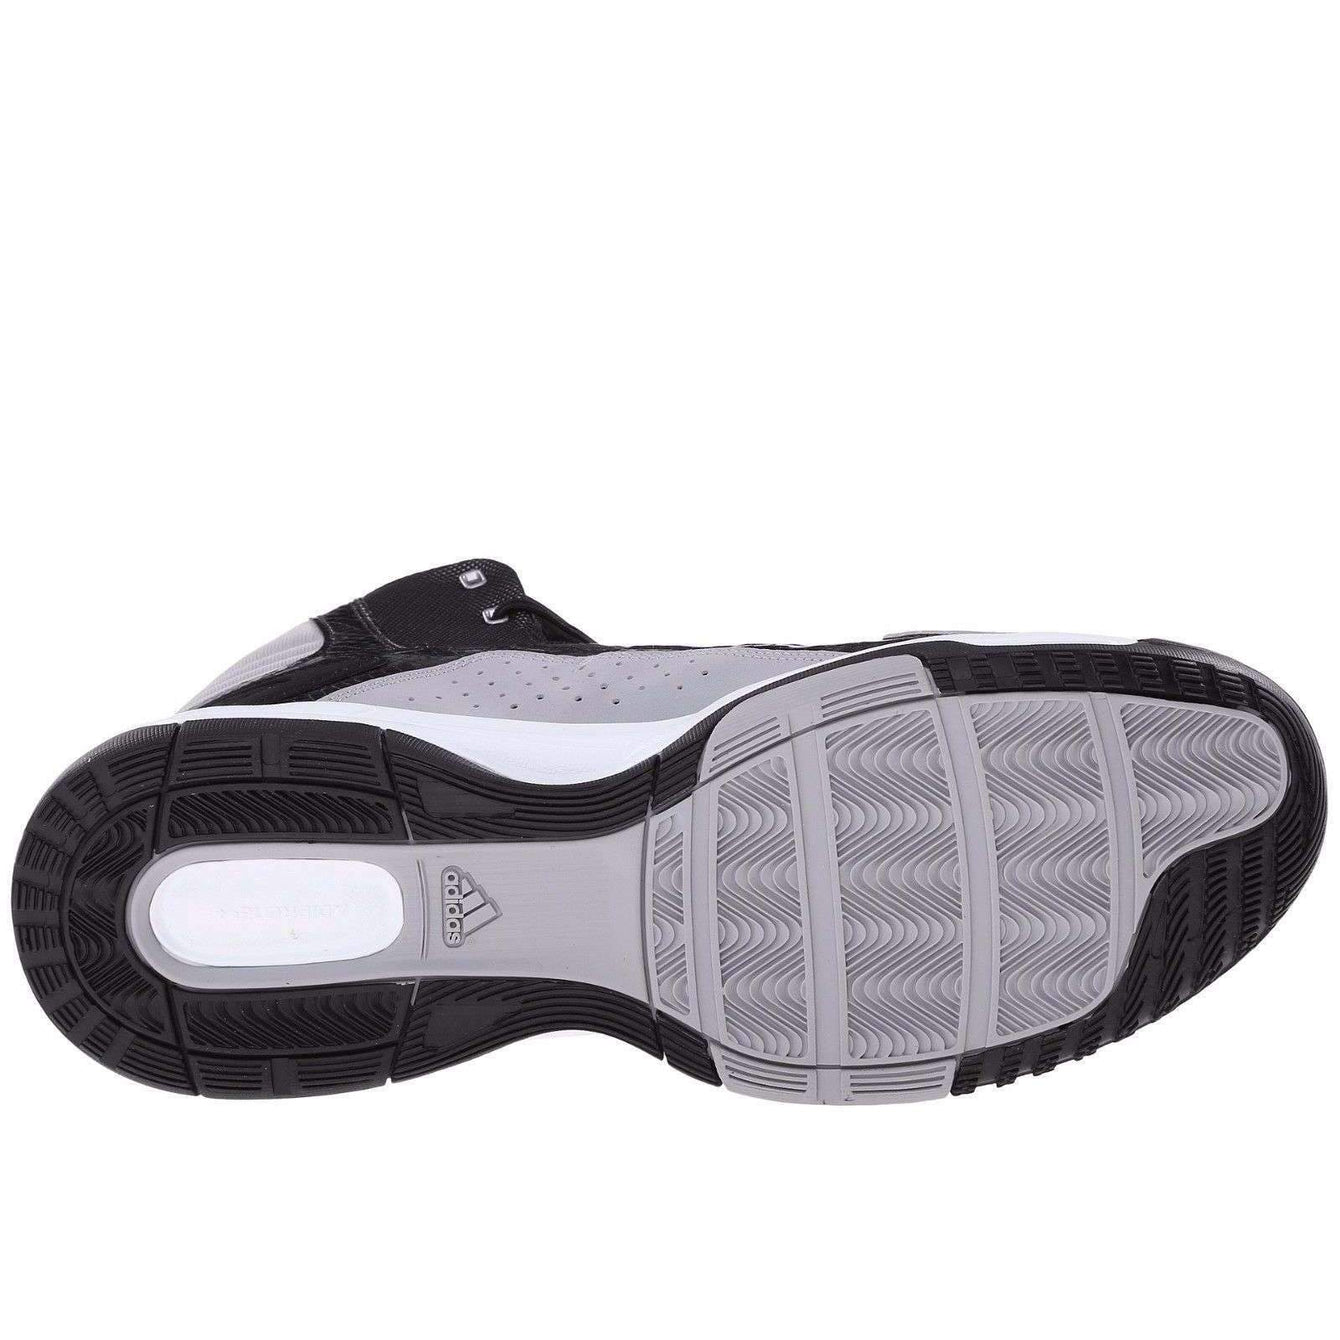 Adidas Amplify Basketball Shoe  Adidas Men's shoes kick-it-shoe-outlet.myshopify.com Kick-it Shoe Outlet Shoes Cheap